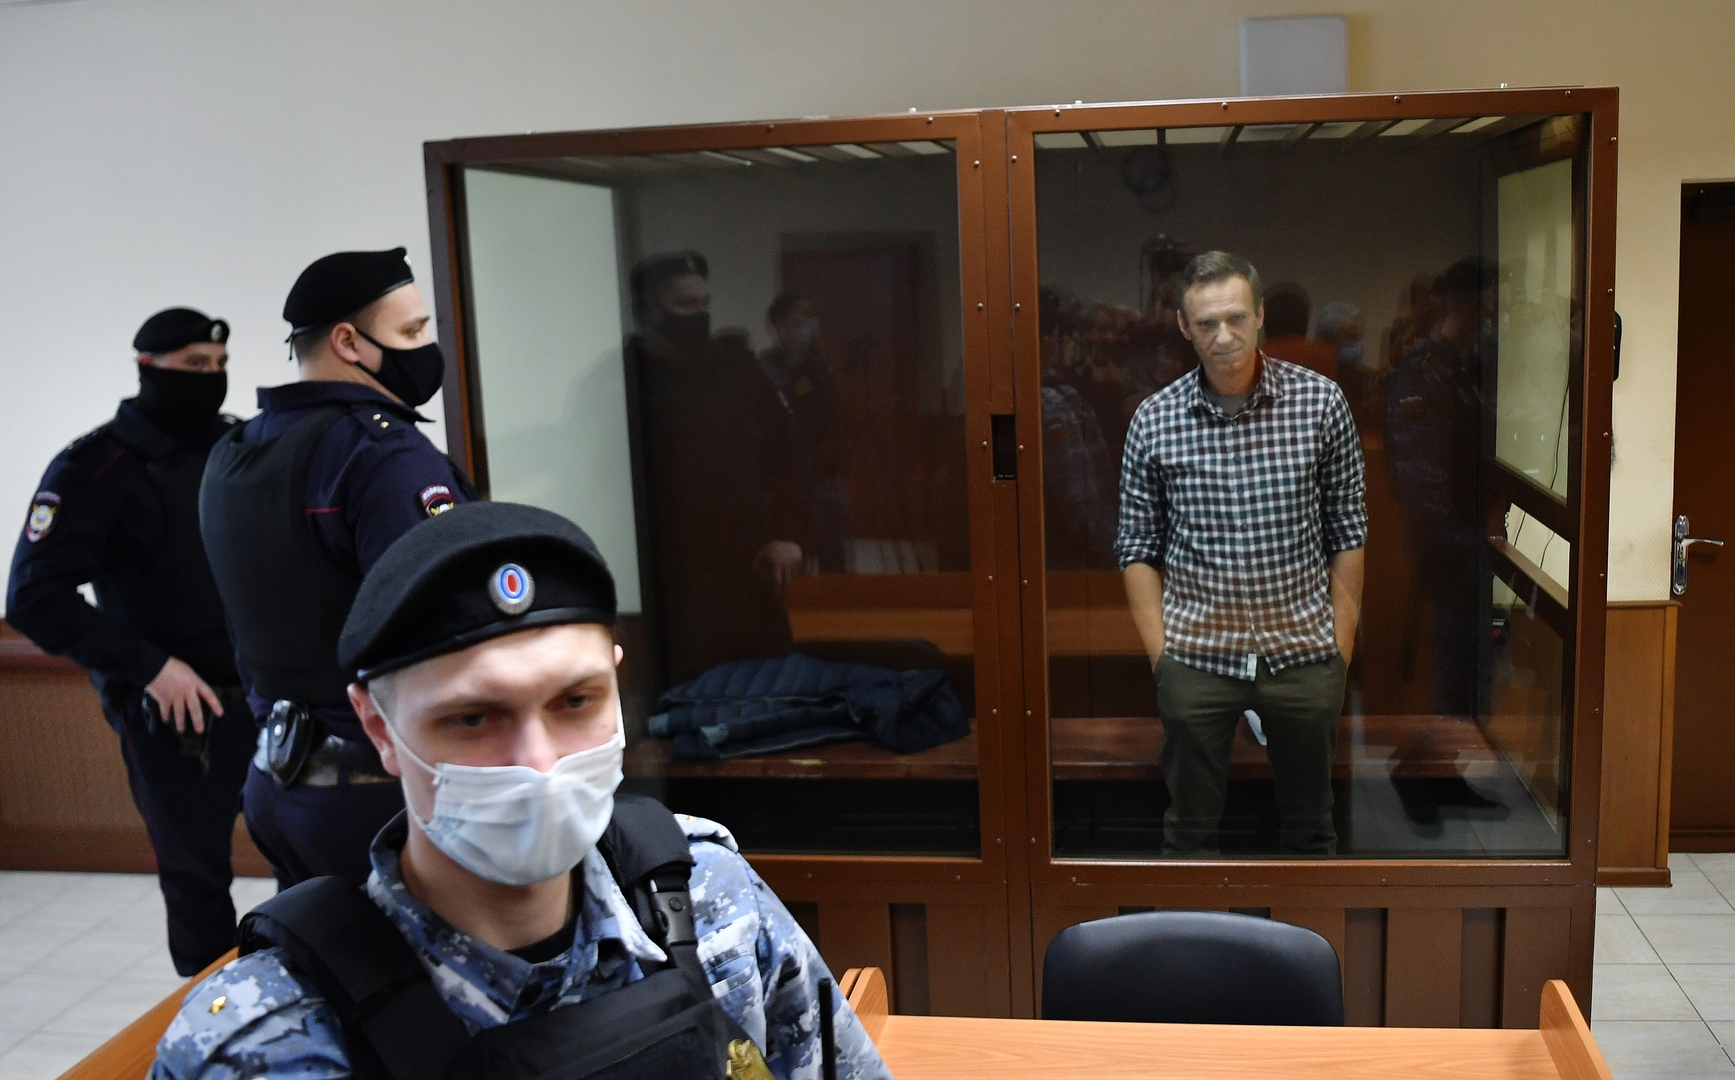 A Russian court is punishing Navalny with a fine of more than $ 11,000 in a defamation case